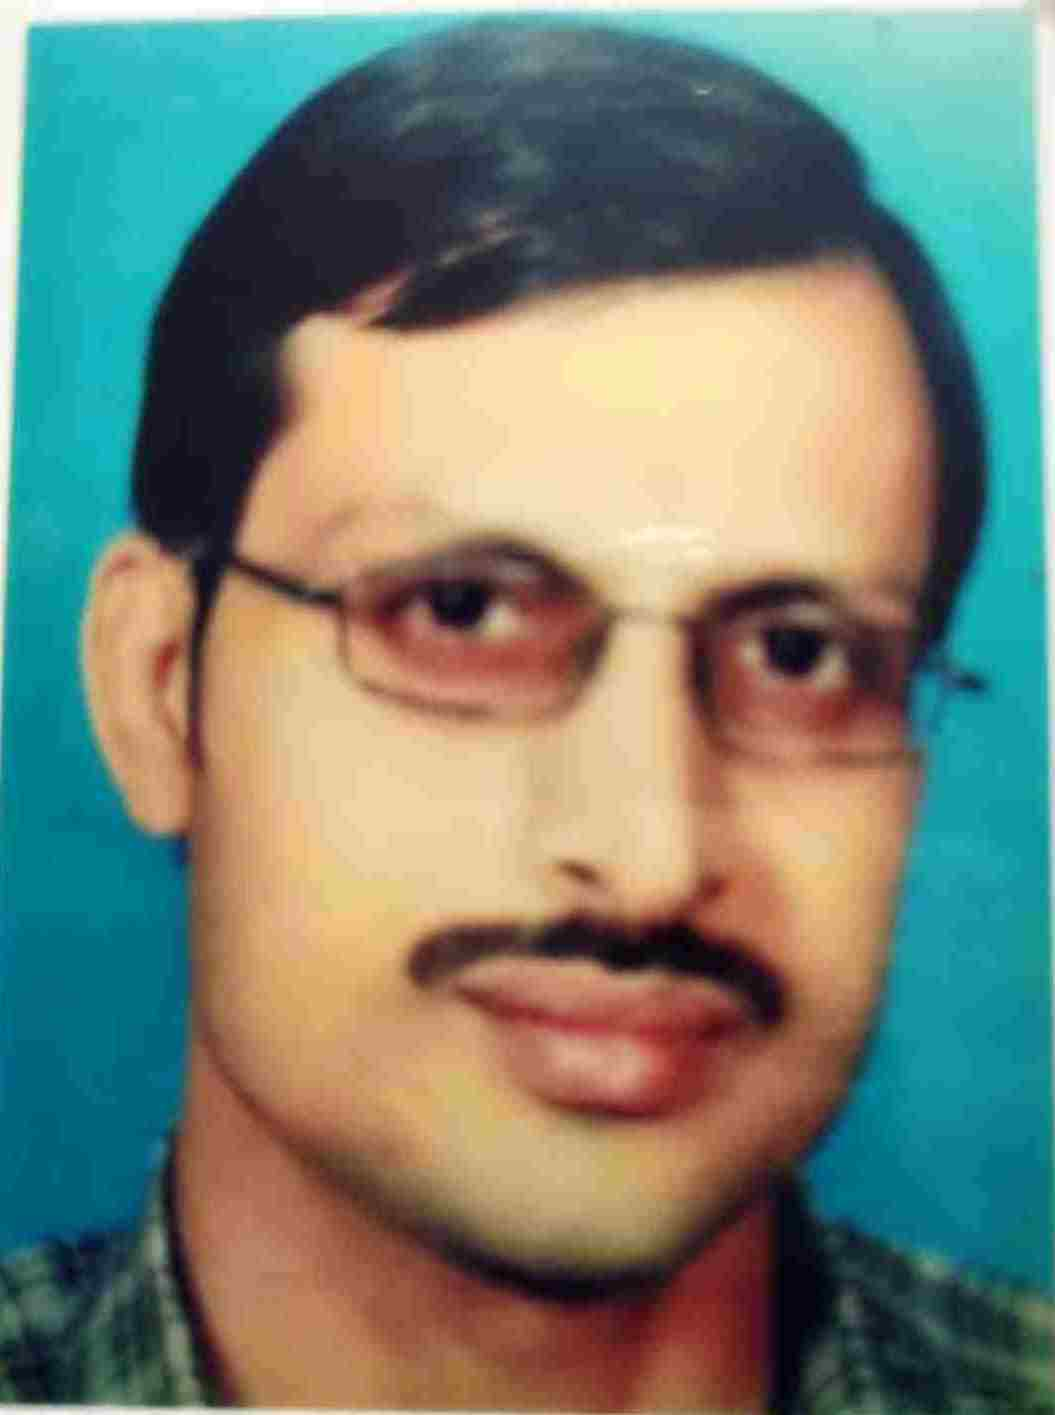 Mr. Susanta Kumar Dash